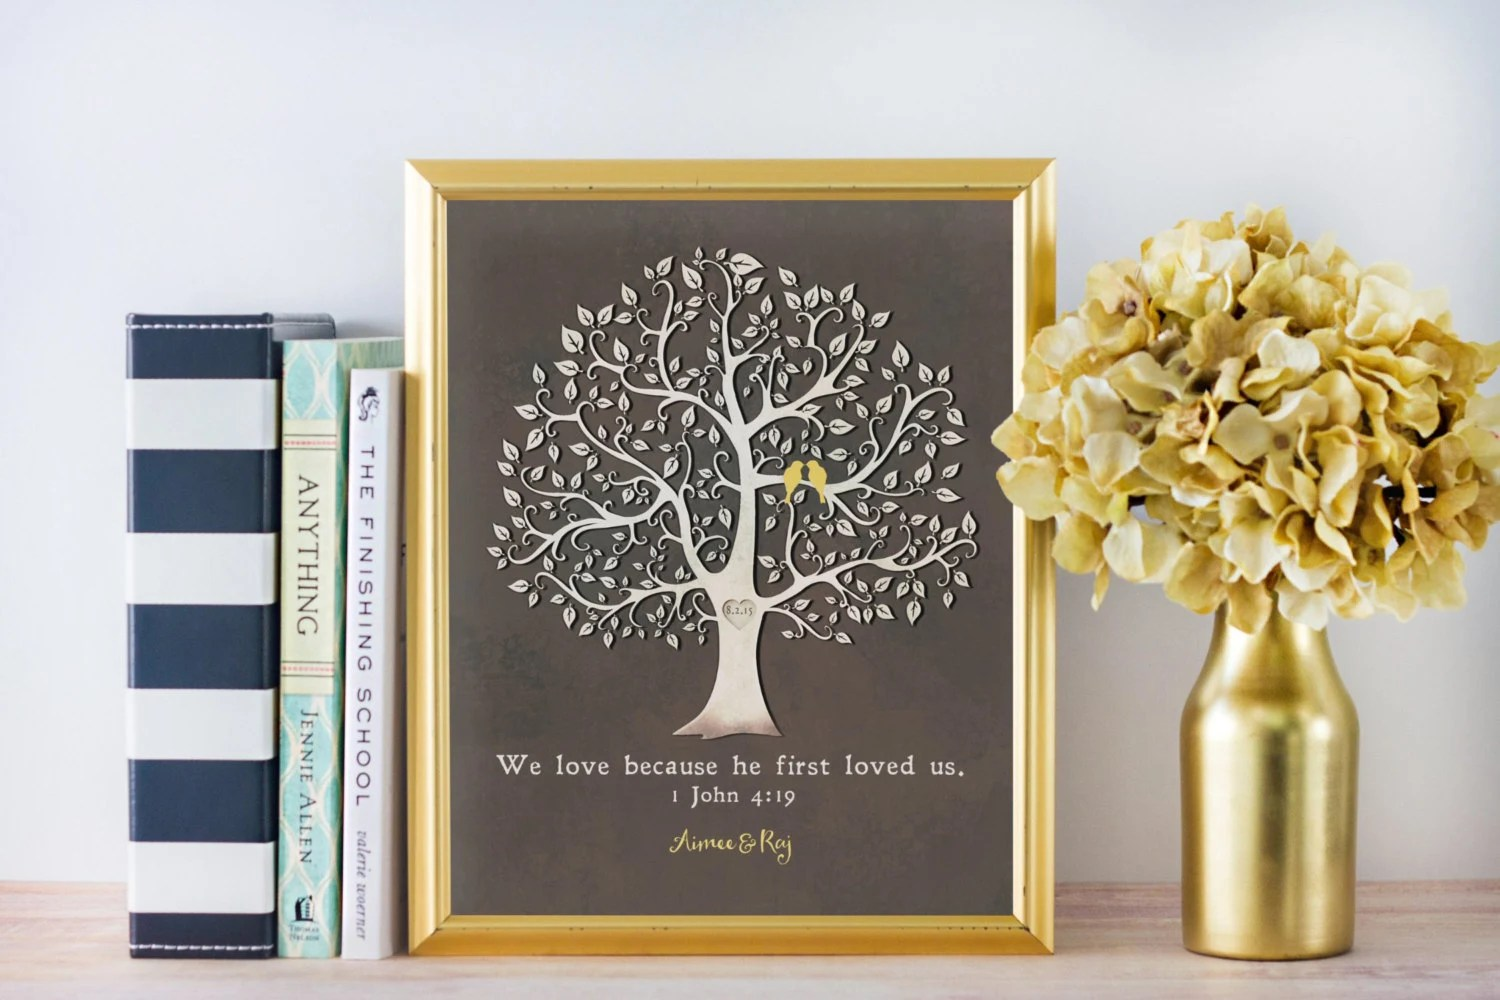 Christian Wedding Gift We Love Because He First Loved Us